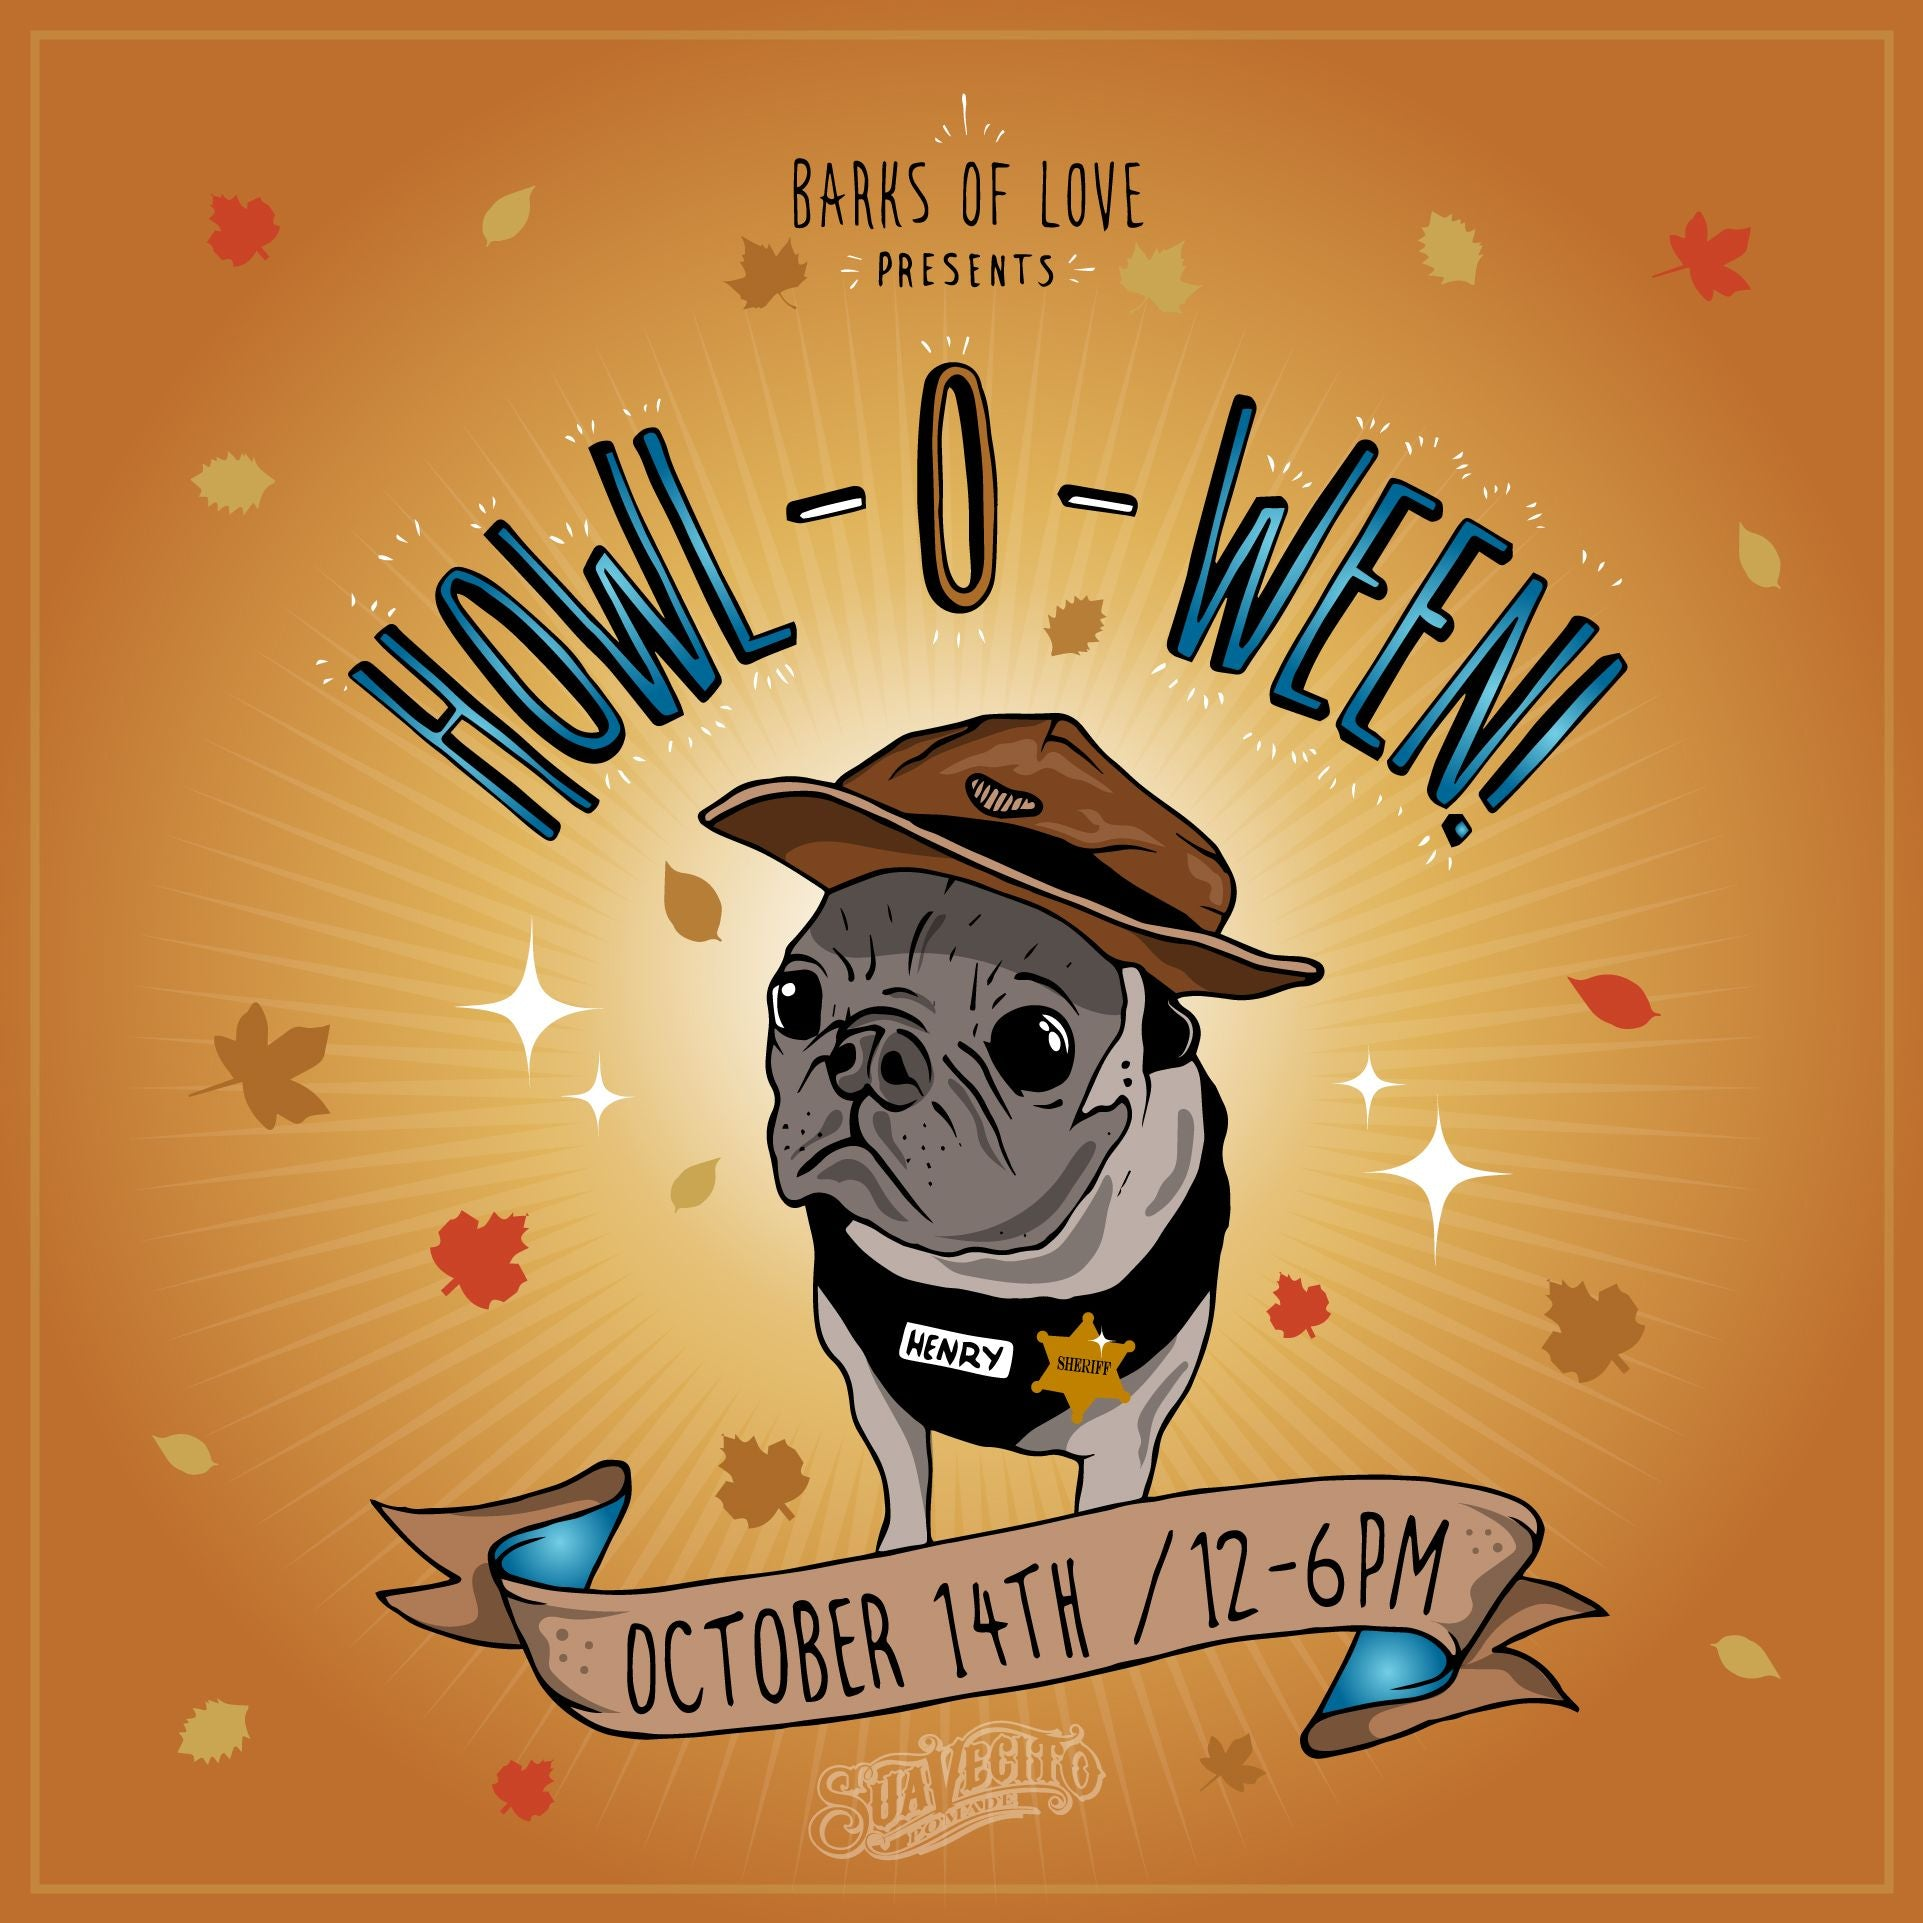 howl-o-ween poster for show with suavecito pomade and a pug dog